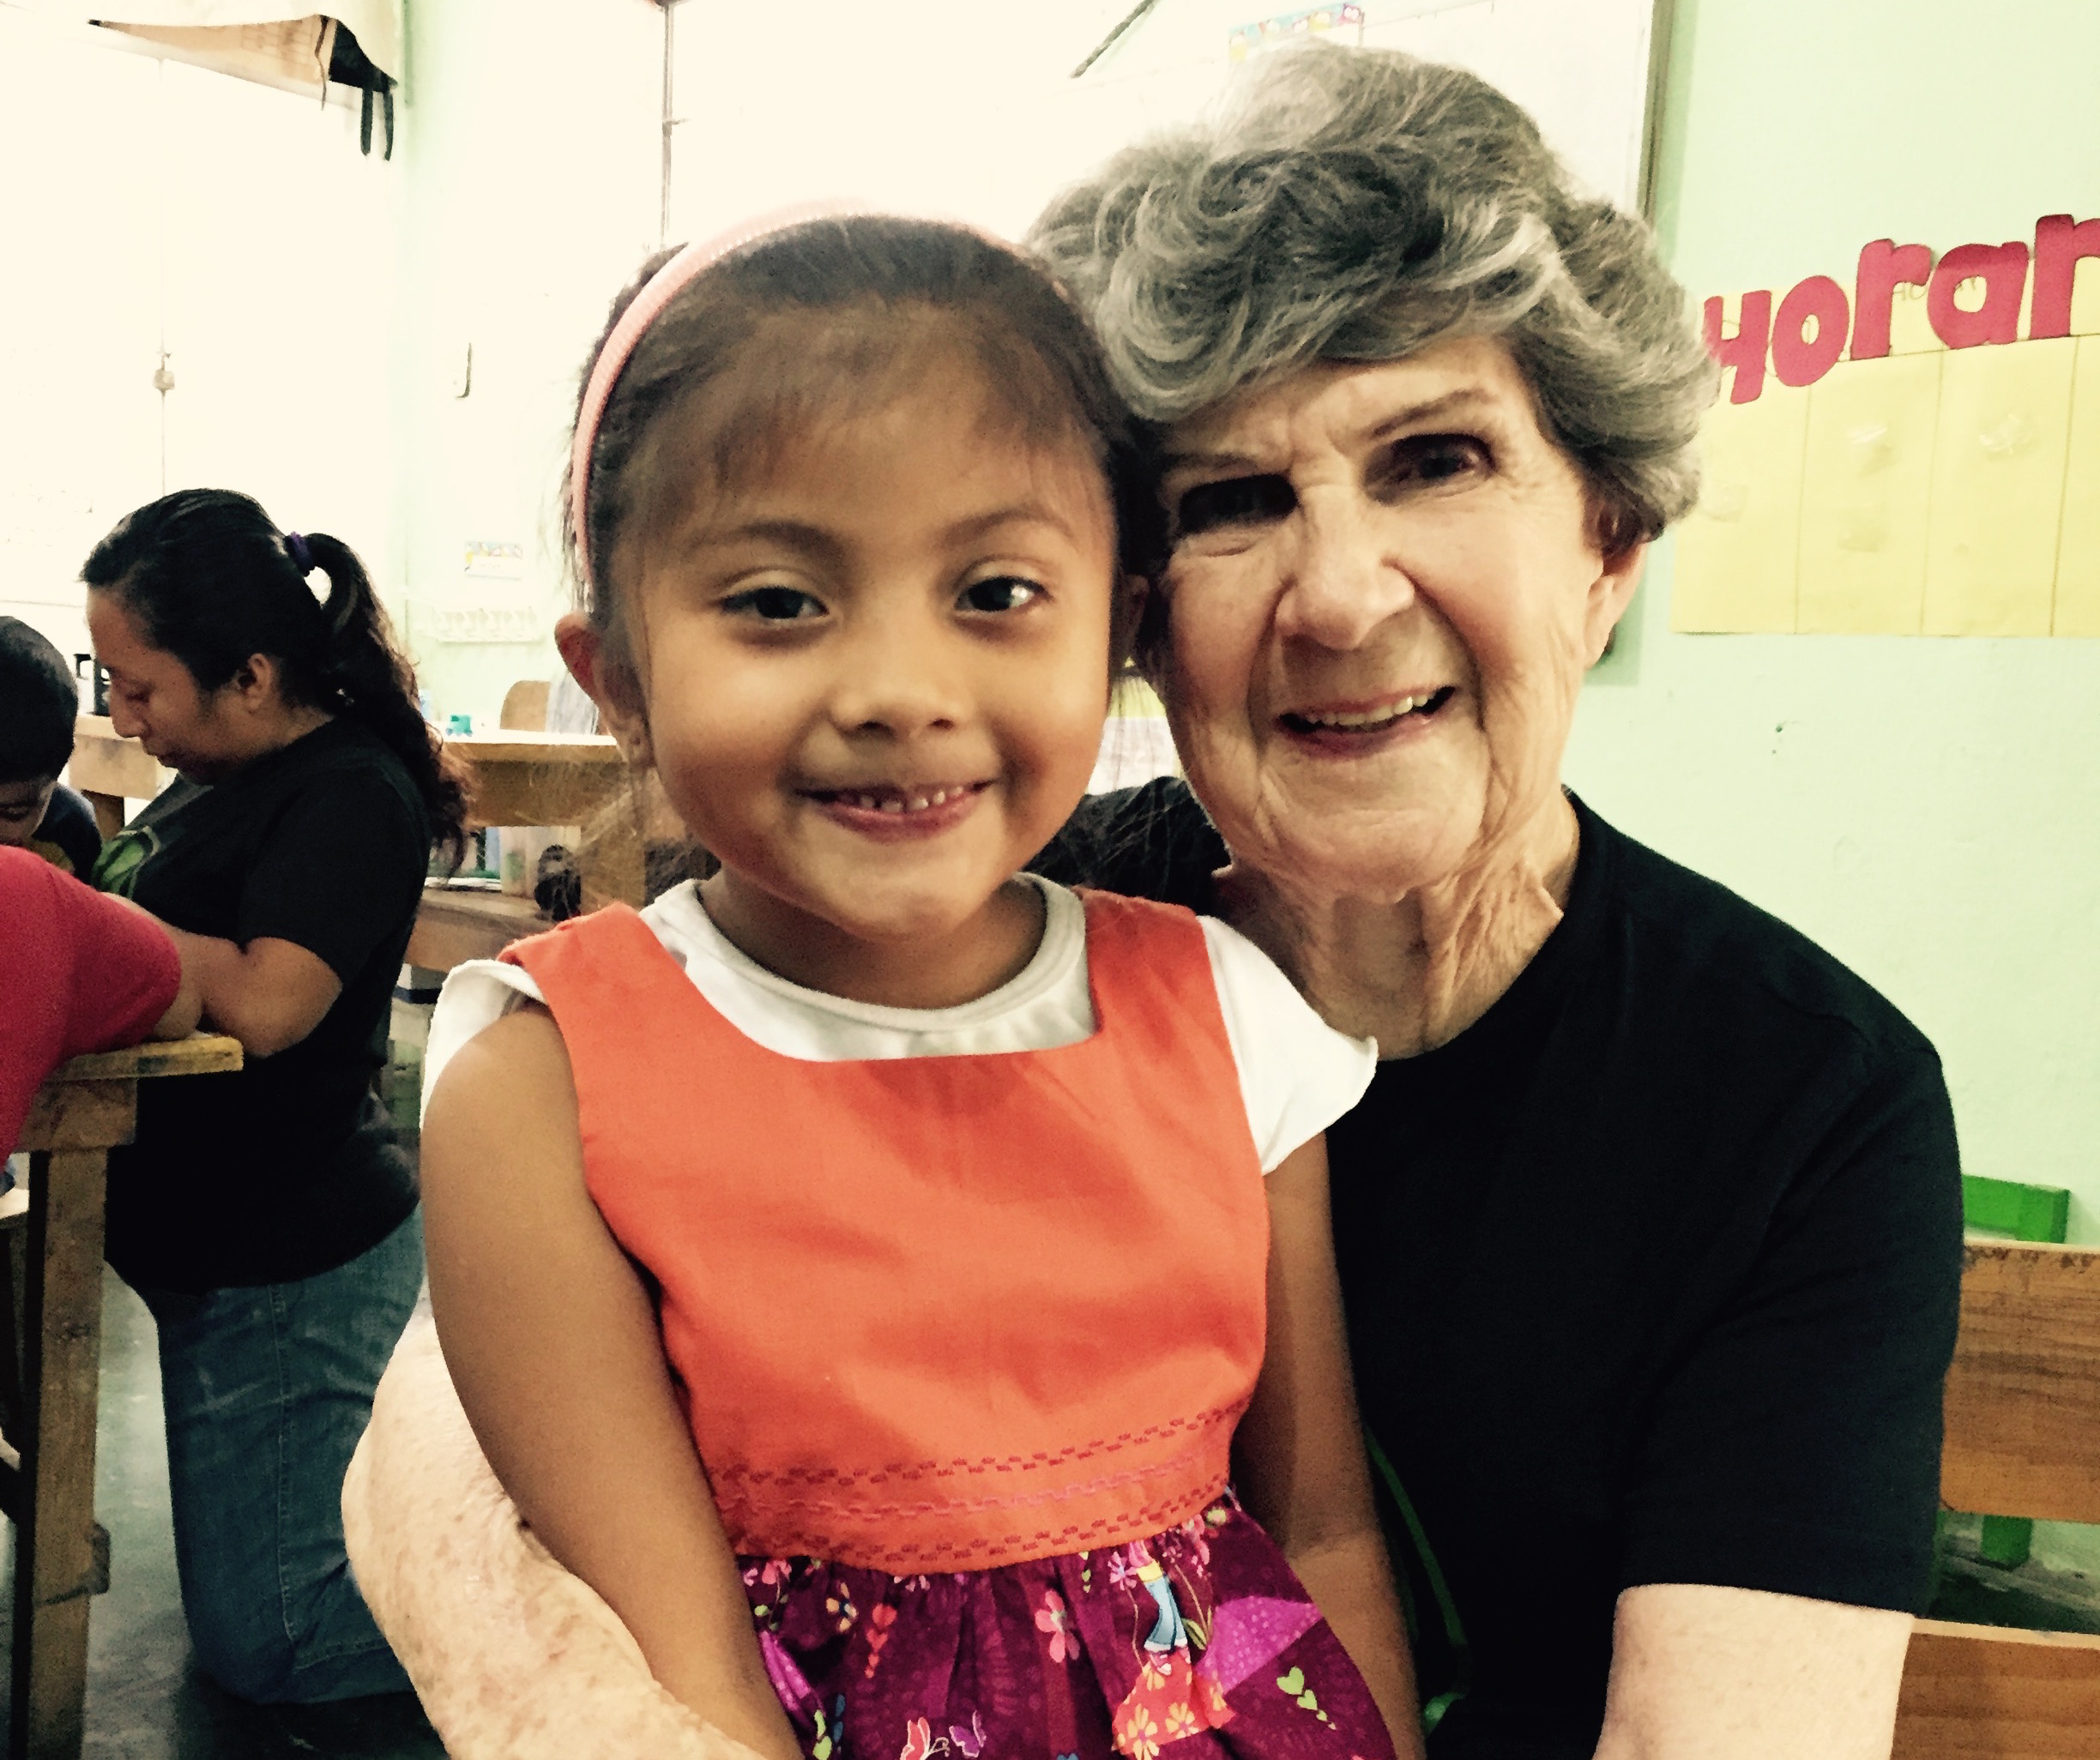 Meeting My Sponsored Child | Lemonade International